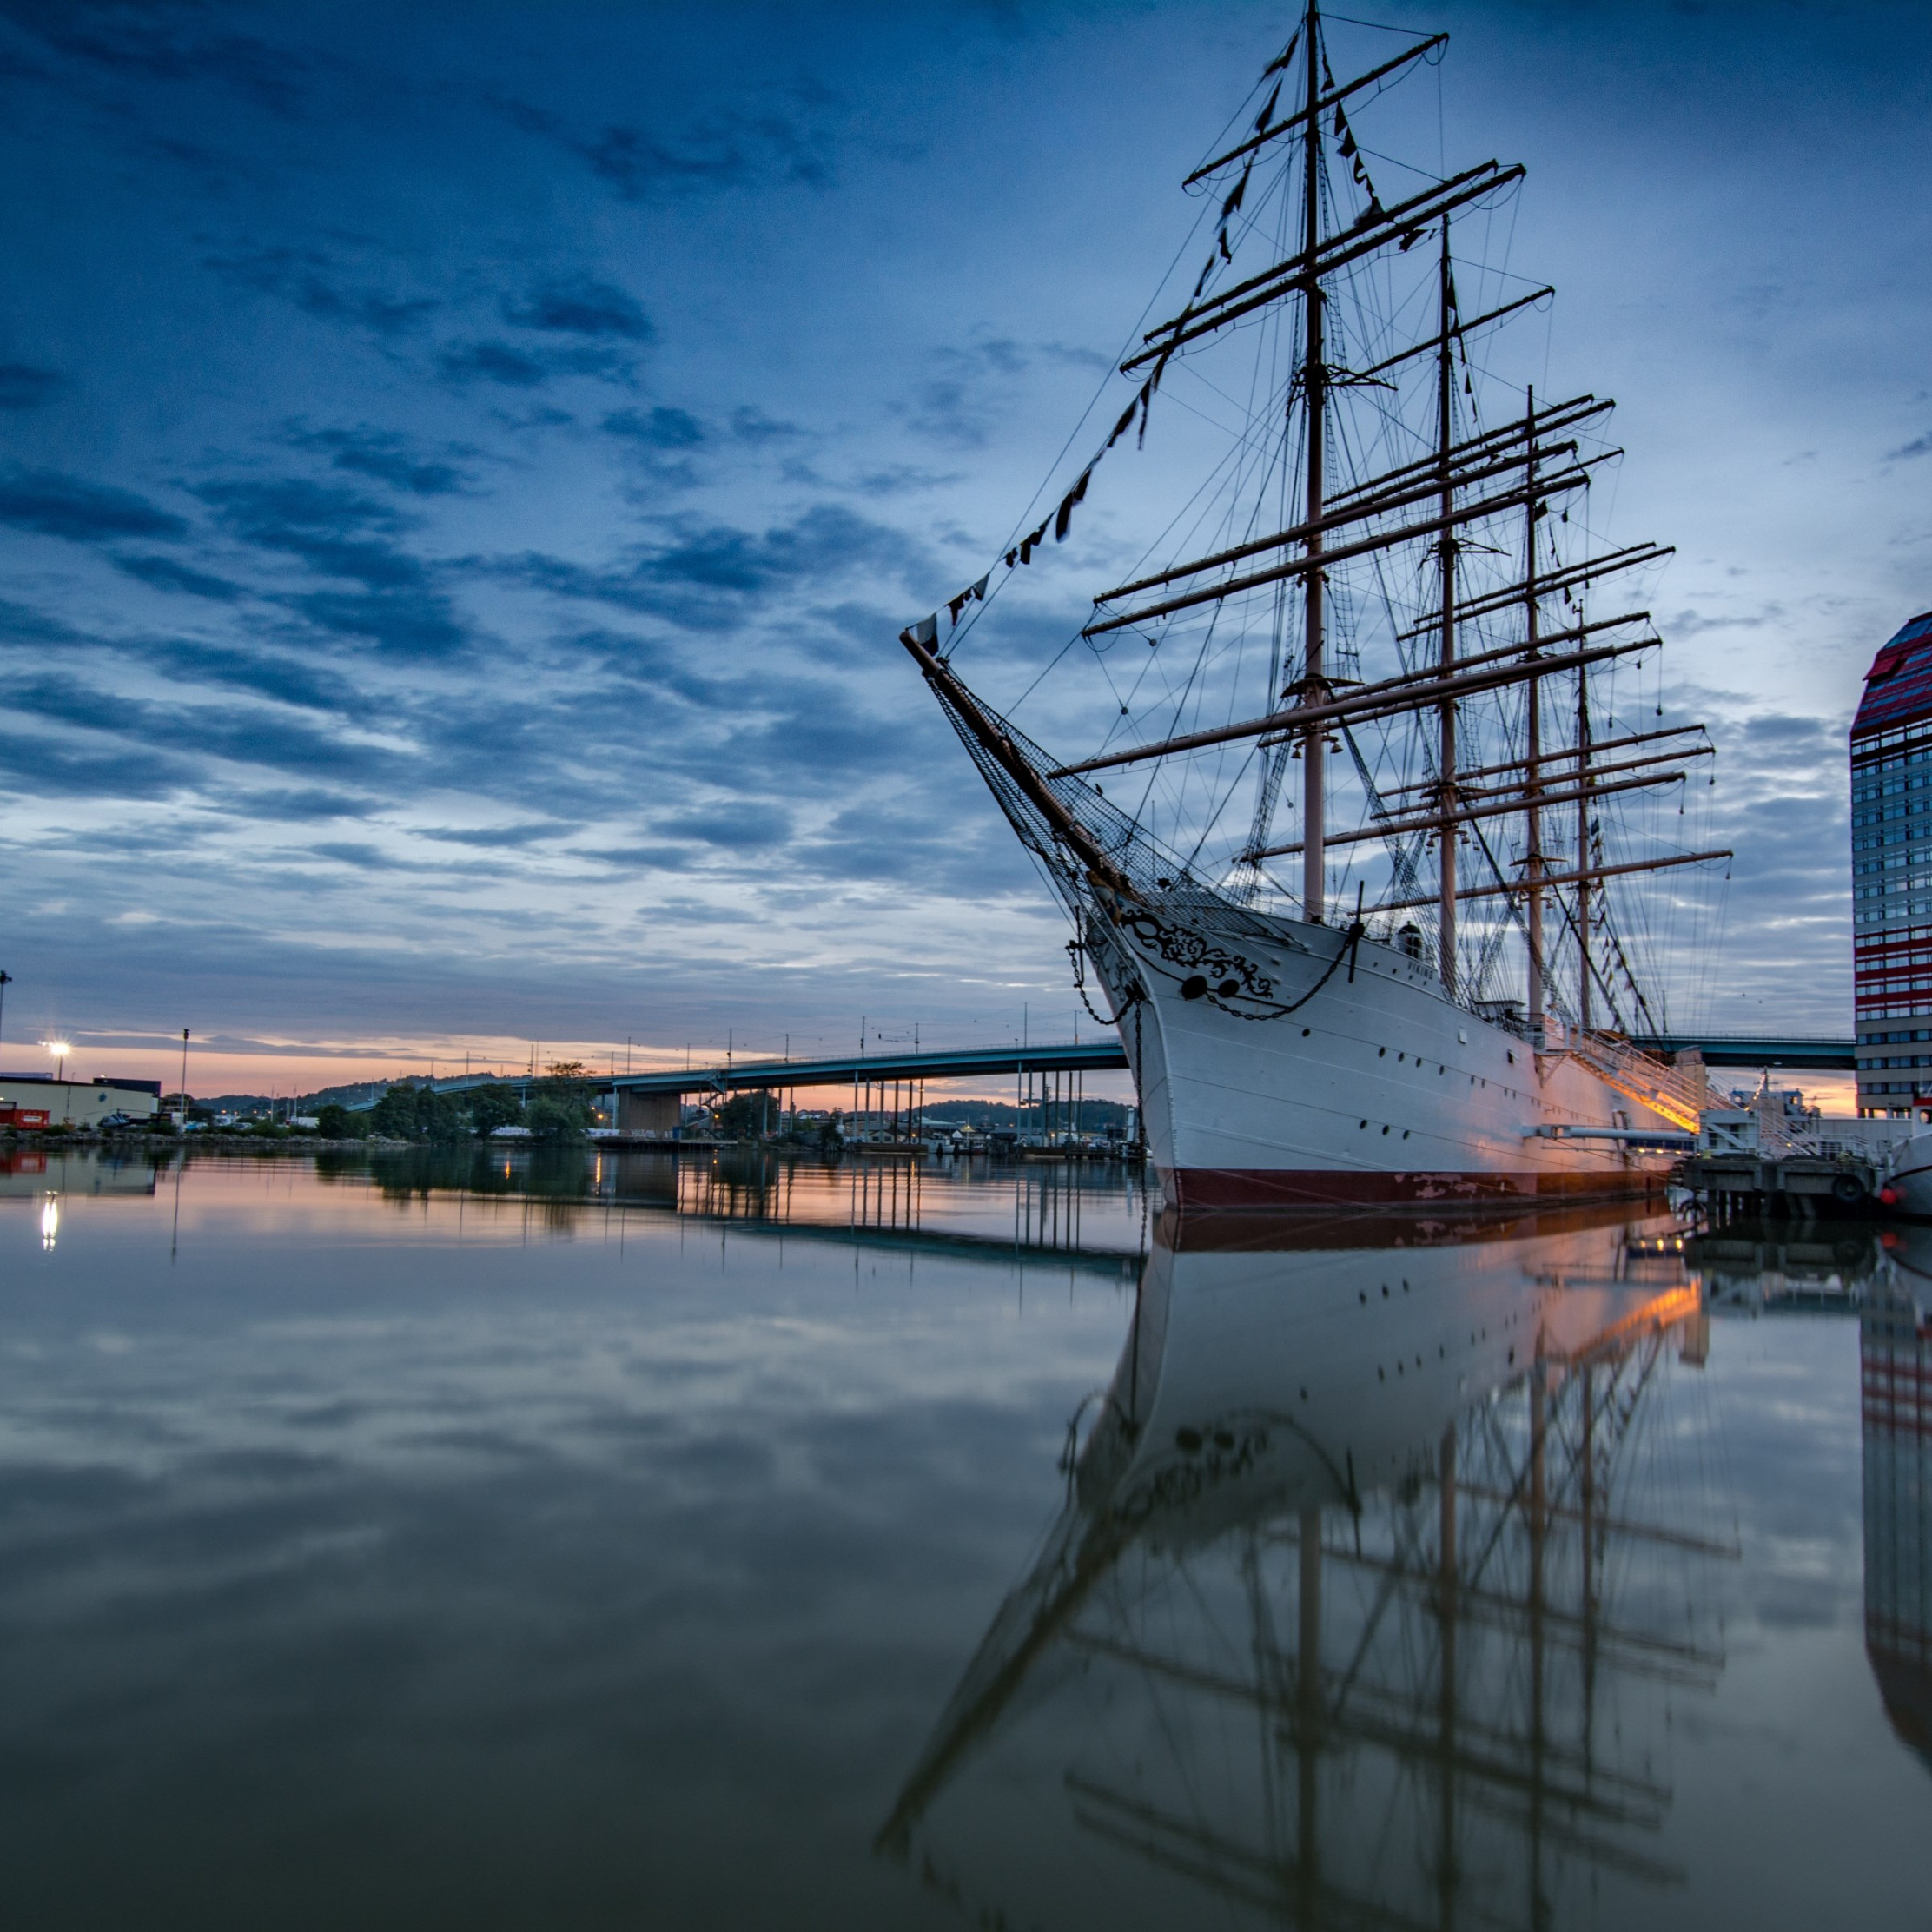 Historic wooden sailing ship in Gothenburg Harbour | 2224x2224 wallpaper